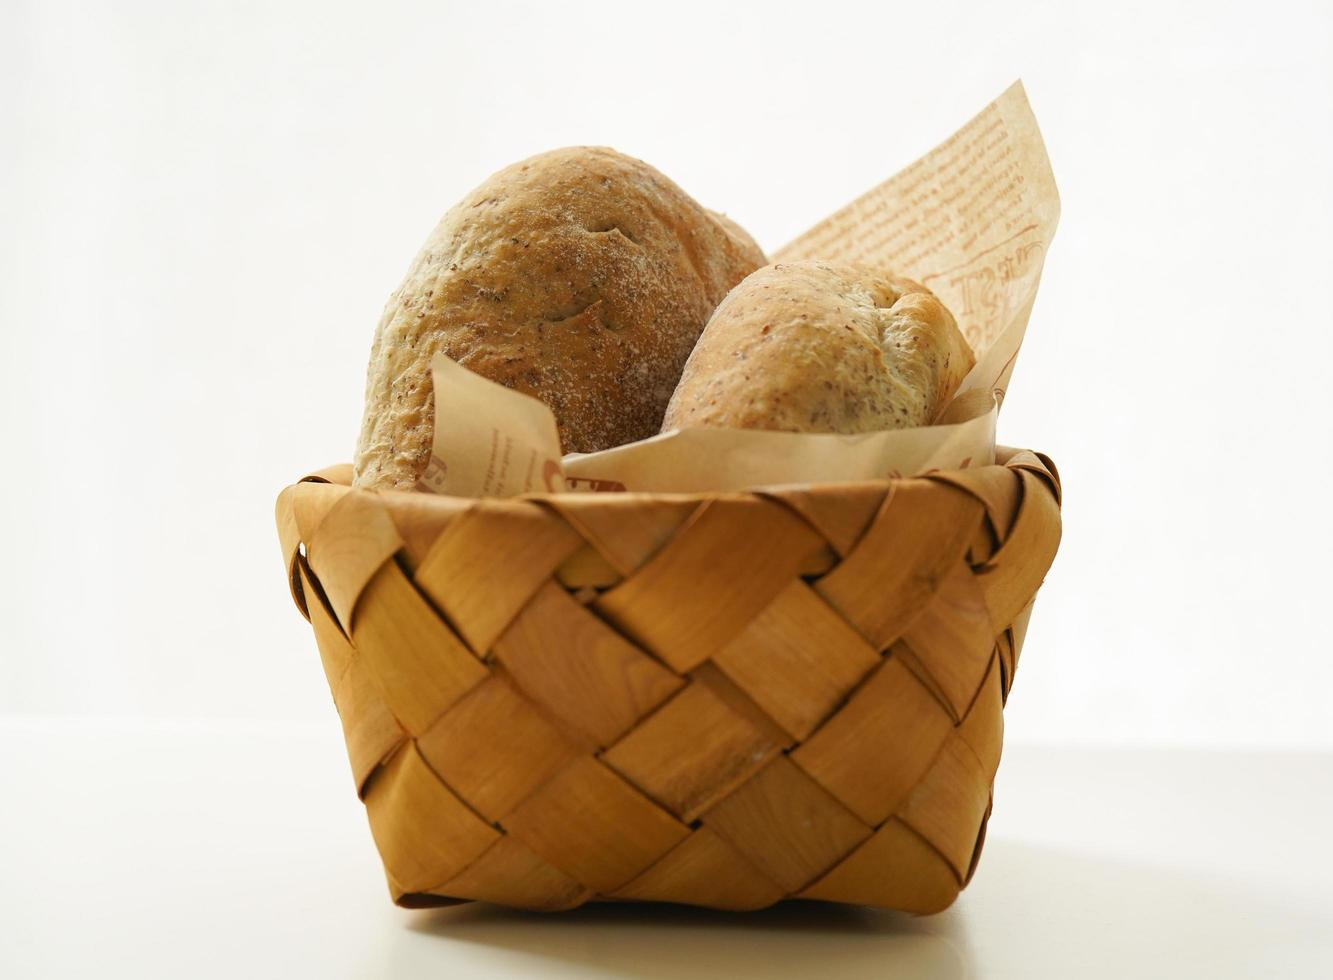 Close-up of bread basket photo